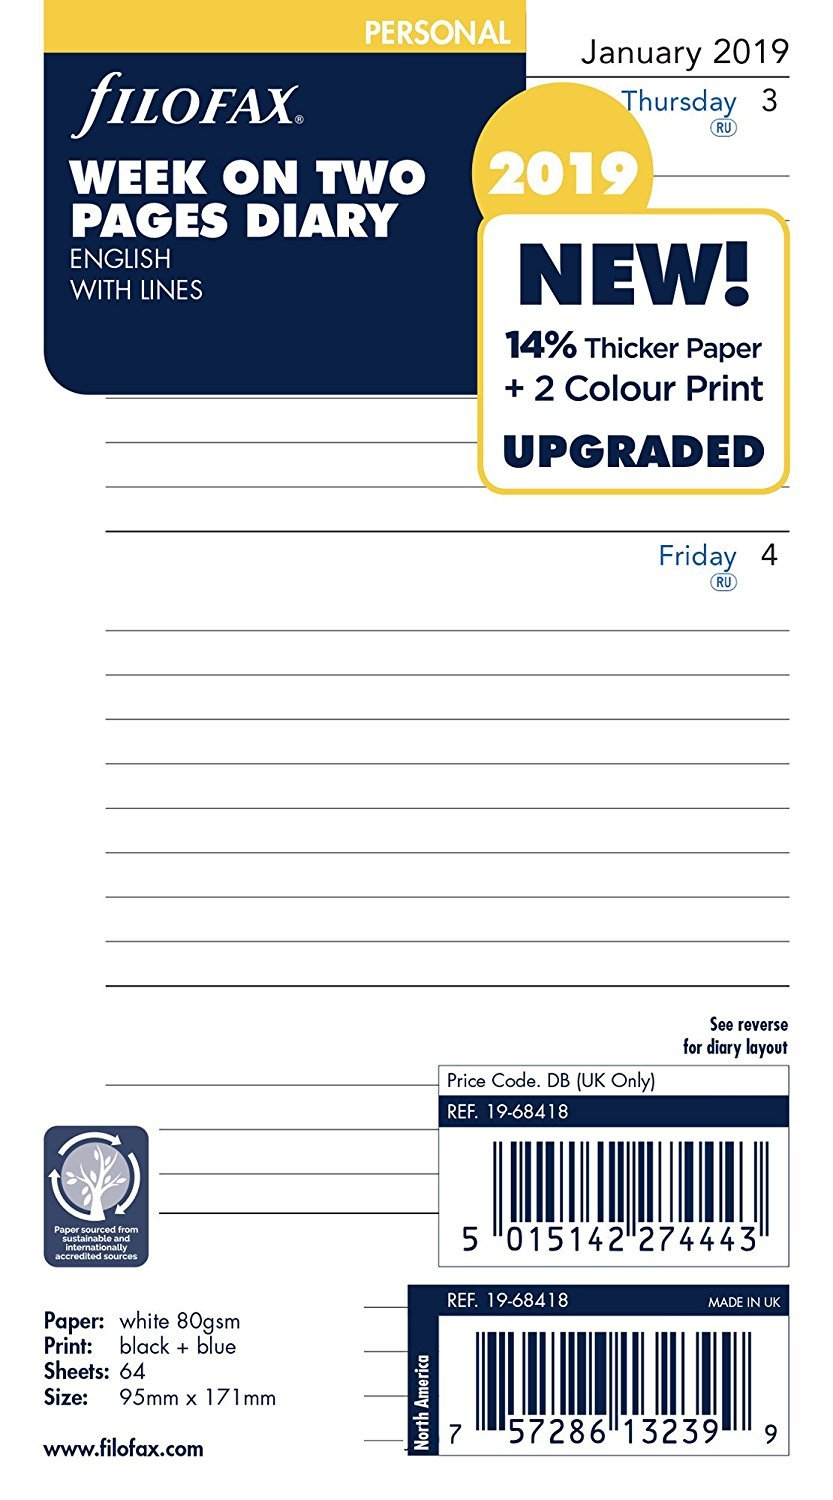 Filofax 19-68418 Personal Week On Two Pages Lined 2019 Diary